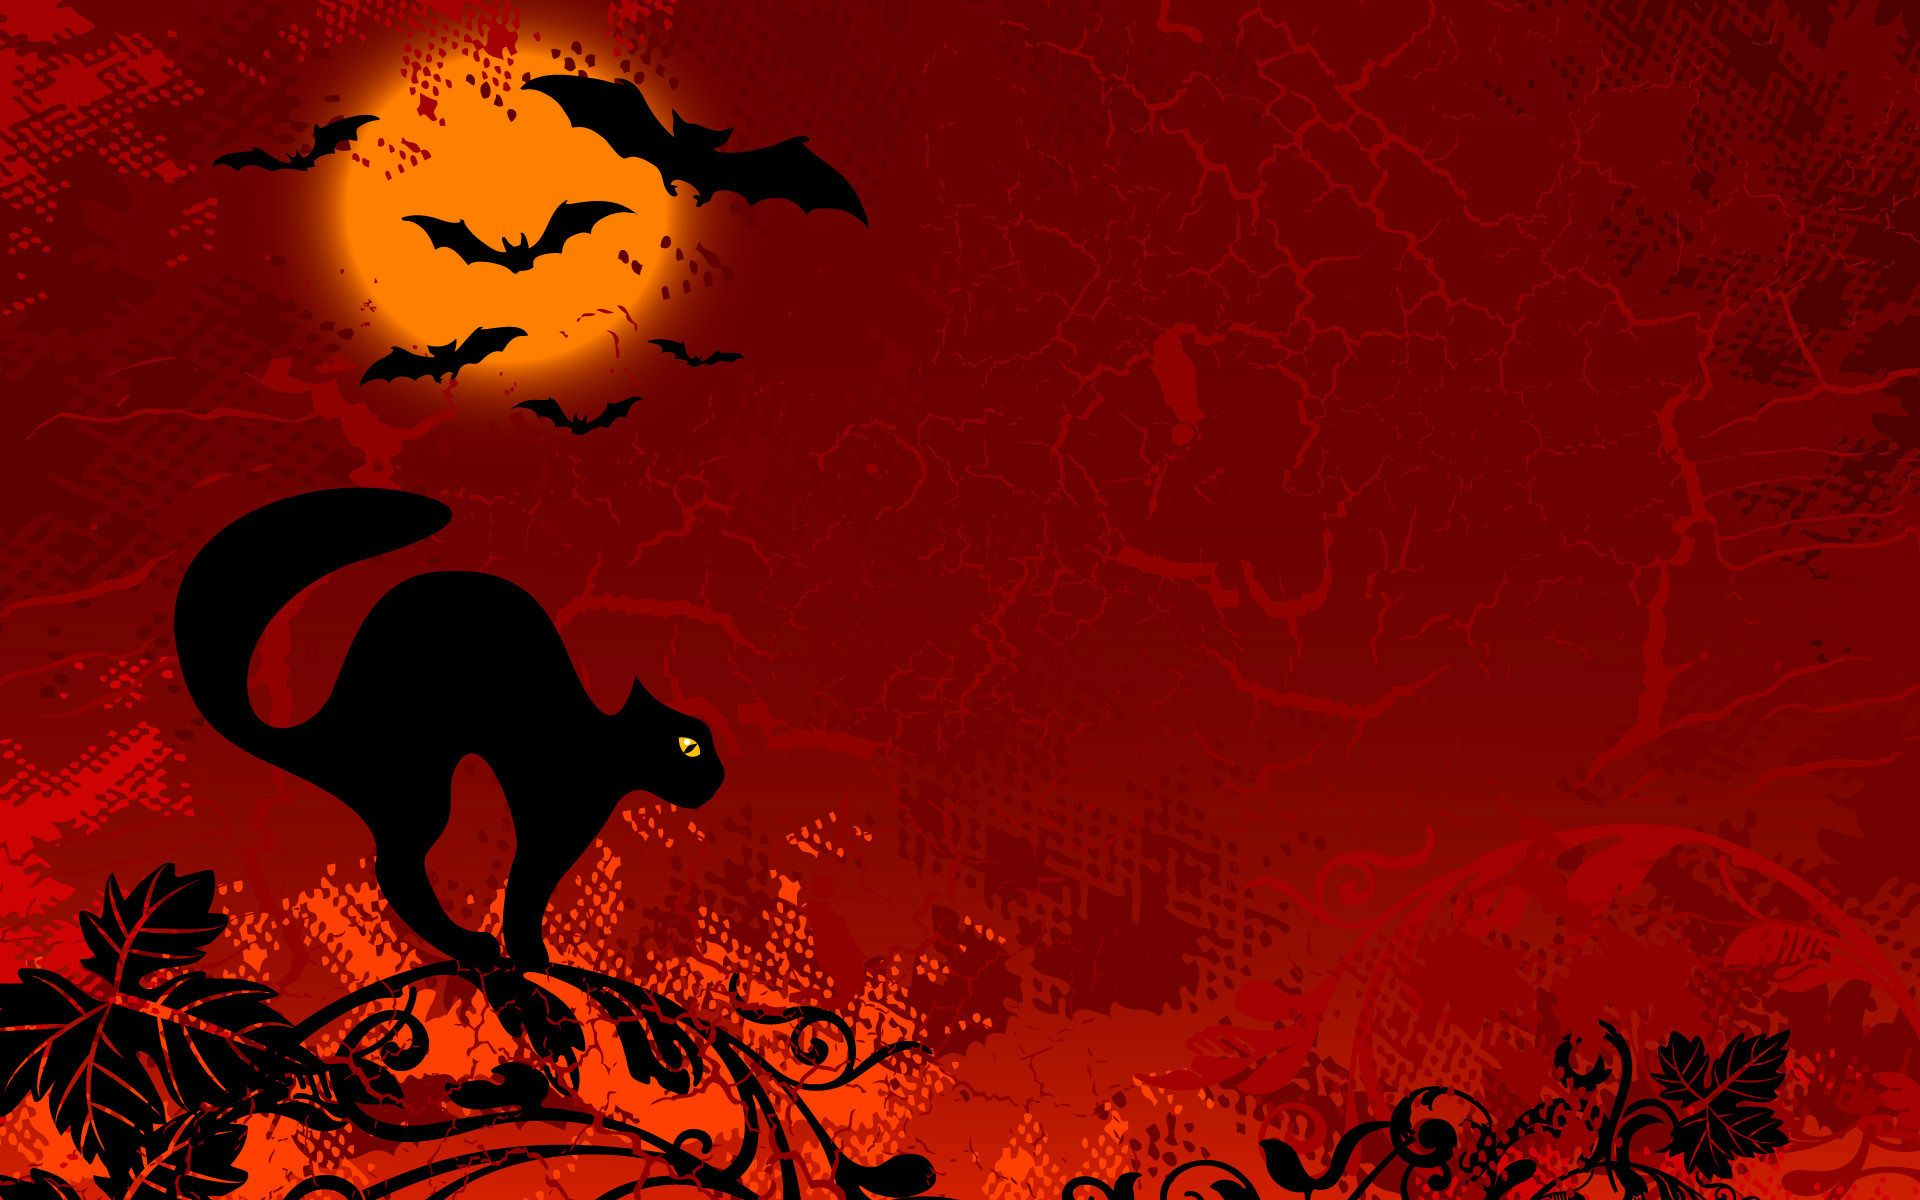 Halloween Wallpaper Picture Halloween Wallpaper Halloween Images Halloween Wallpaper Backgrounds